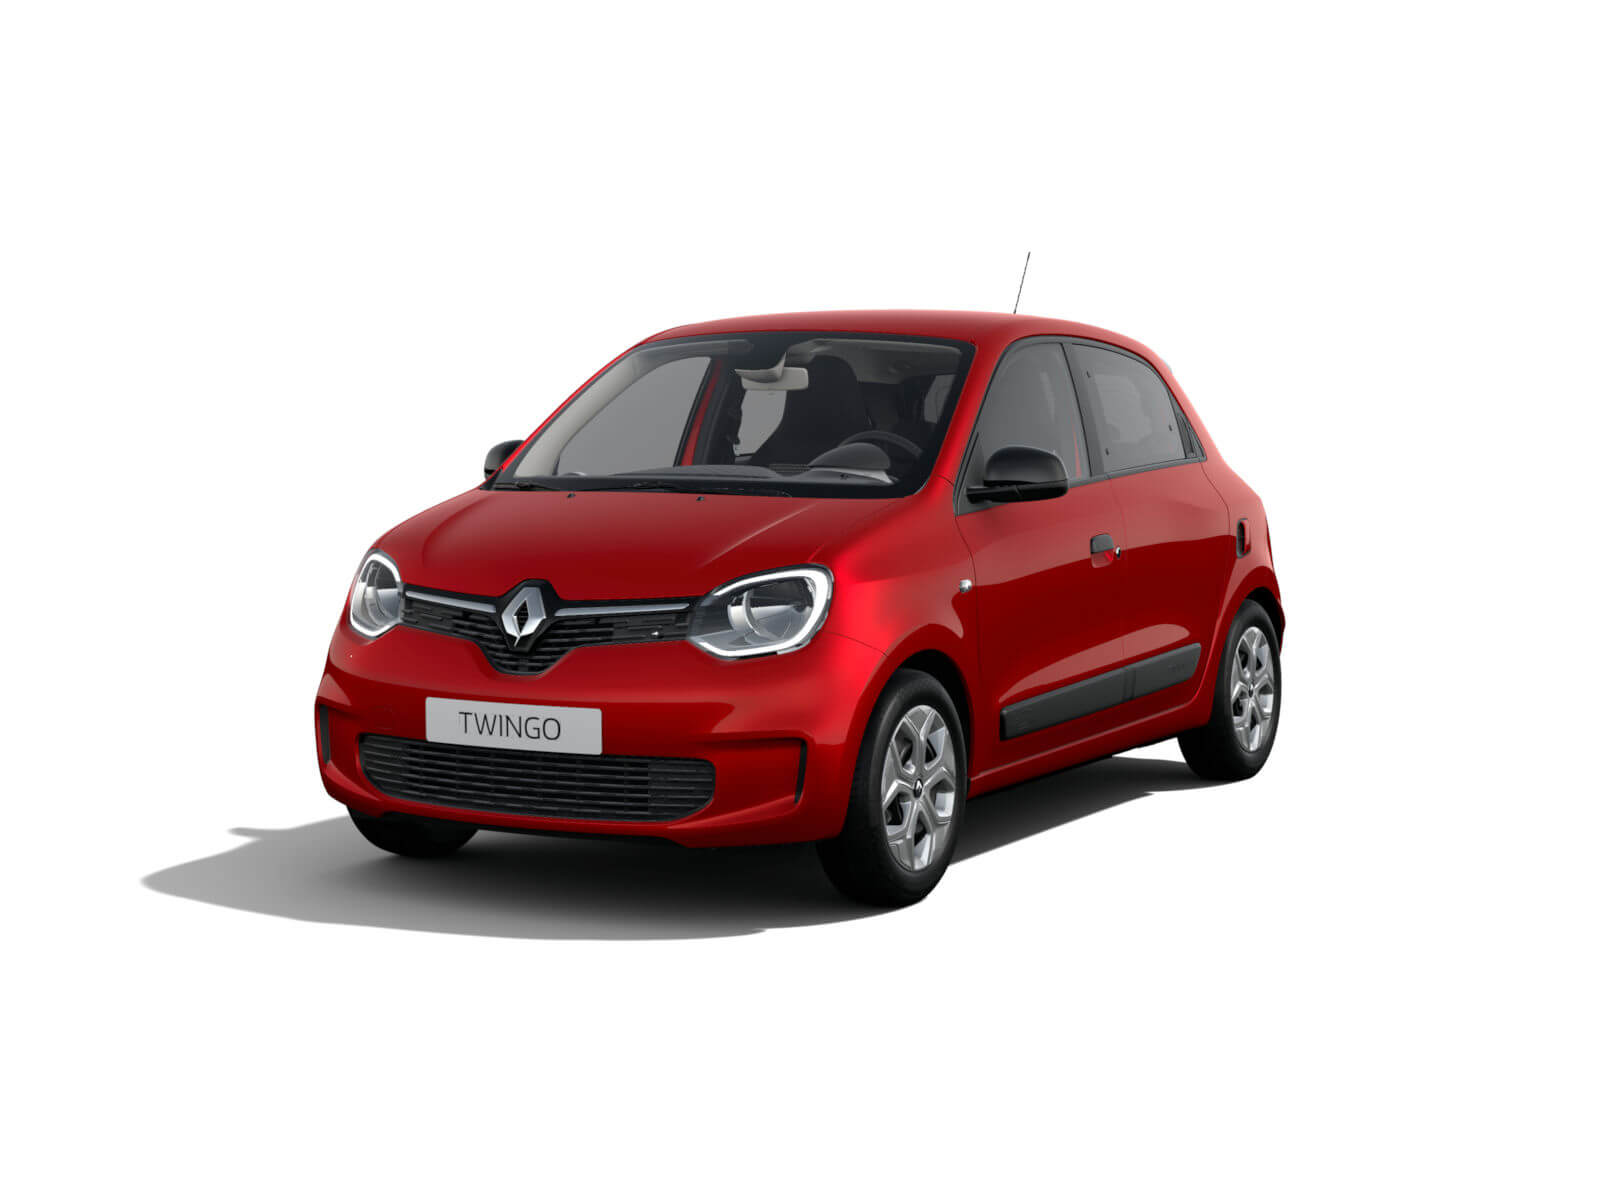 Renault Nouvelle Twingo – Rouge Flamme